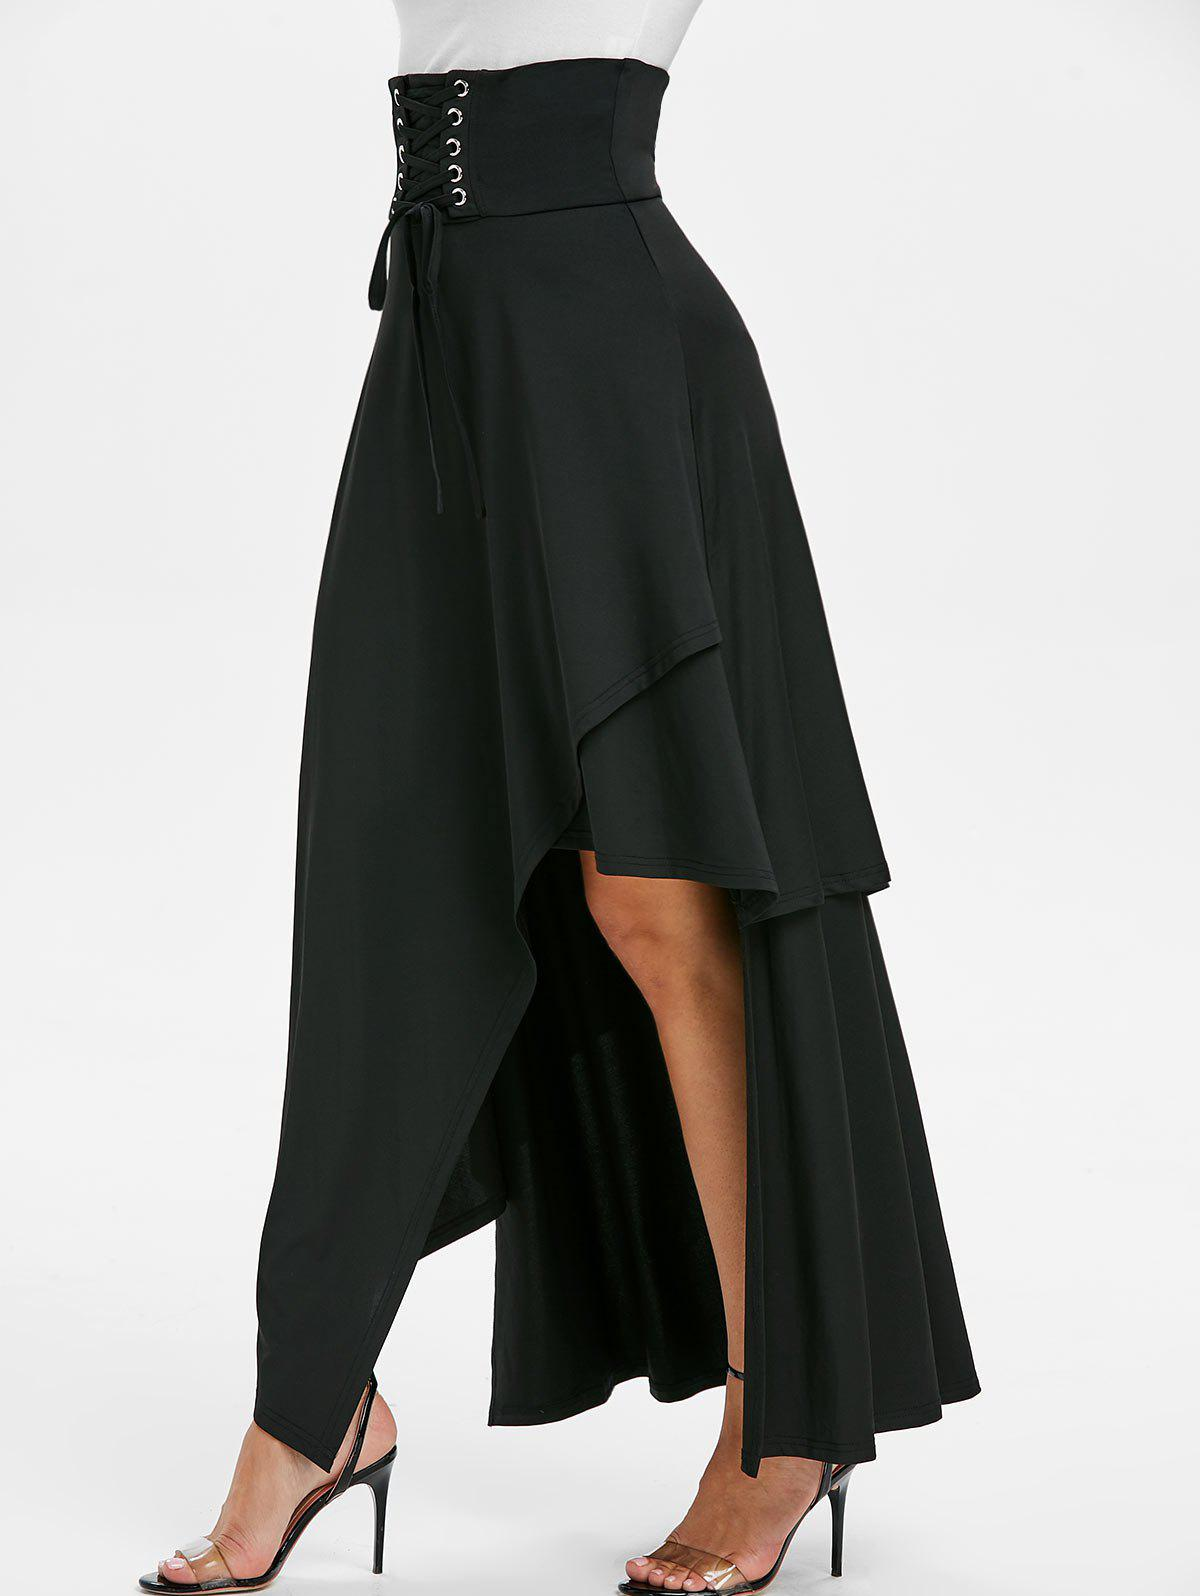 Online clothing stores for women | Rosegal Asymemtric Layered Skirt | Beanstalk Mums